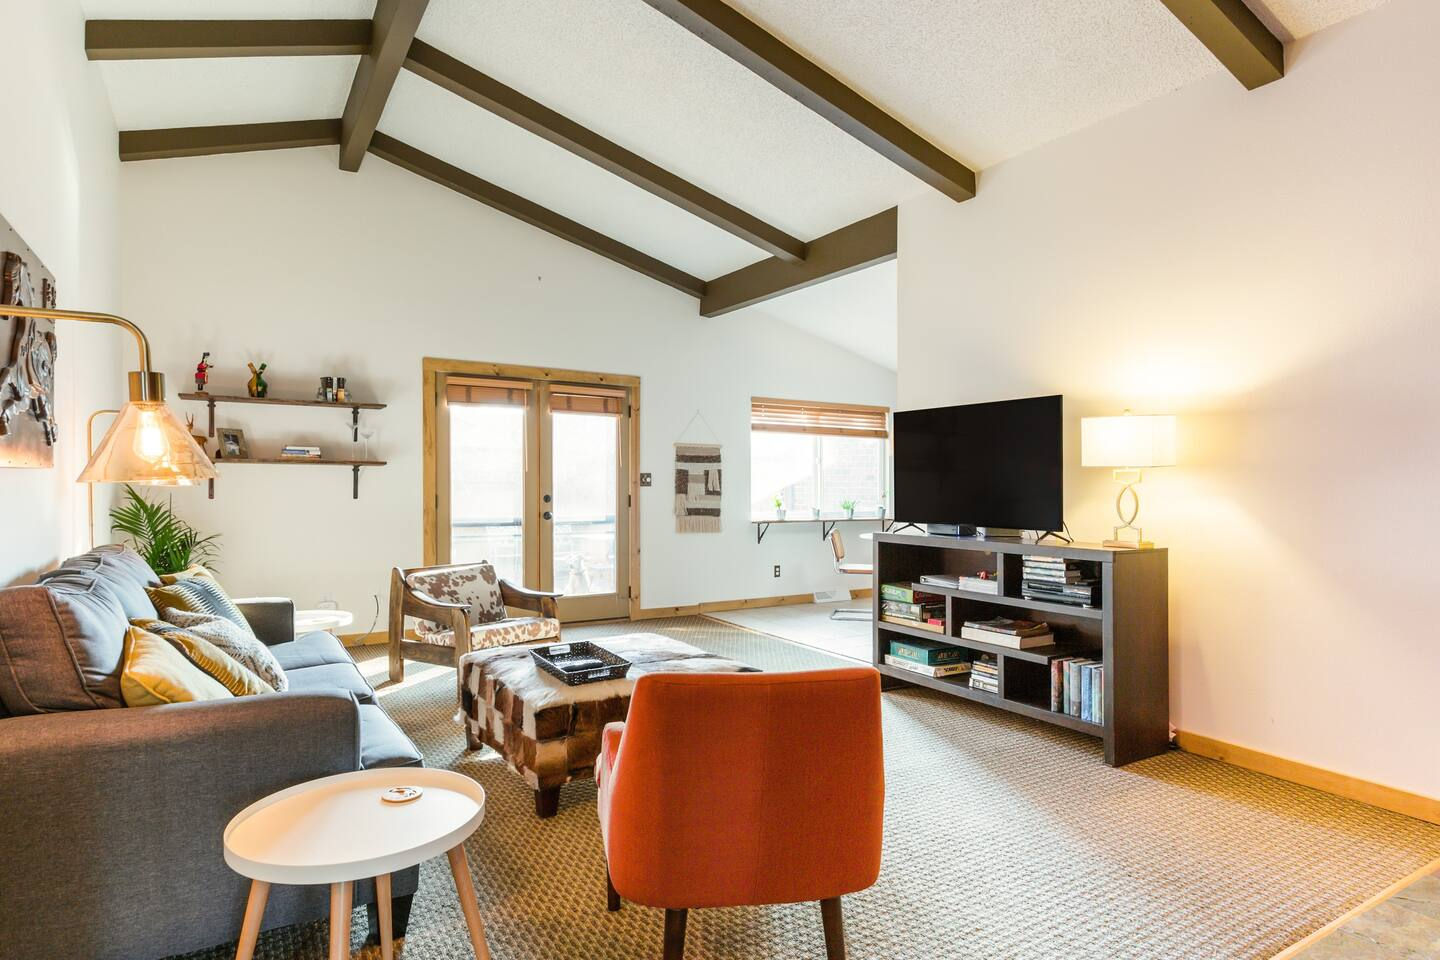 Savor the Mountain Vibes at This Stylish Retreat Home - Airbnb in Boulder